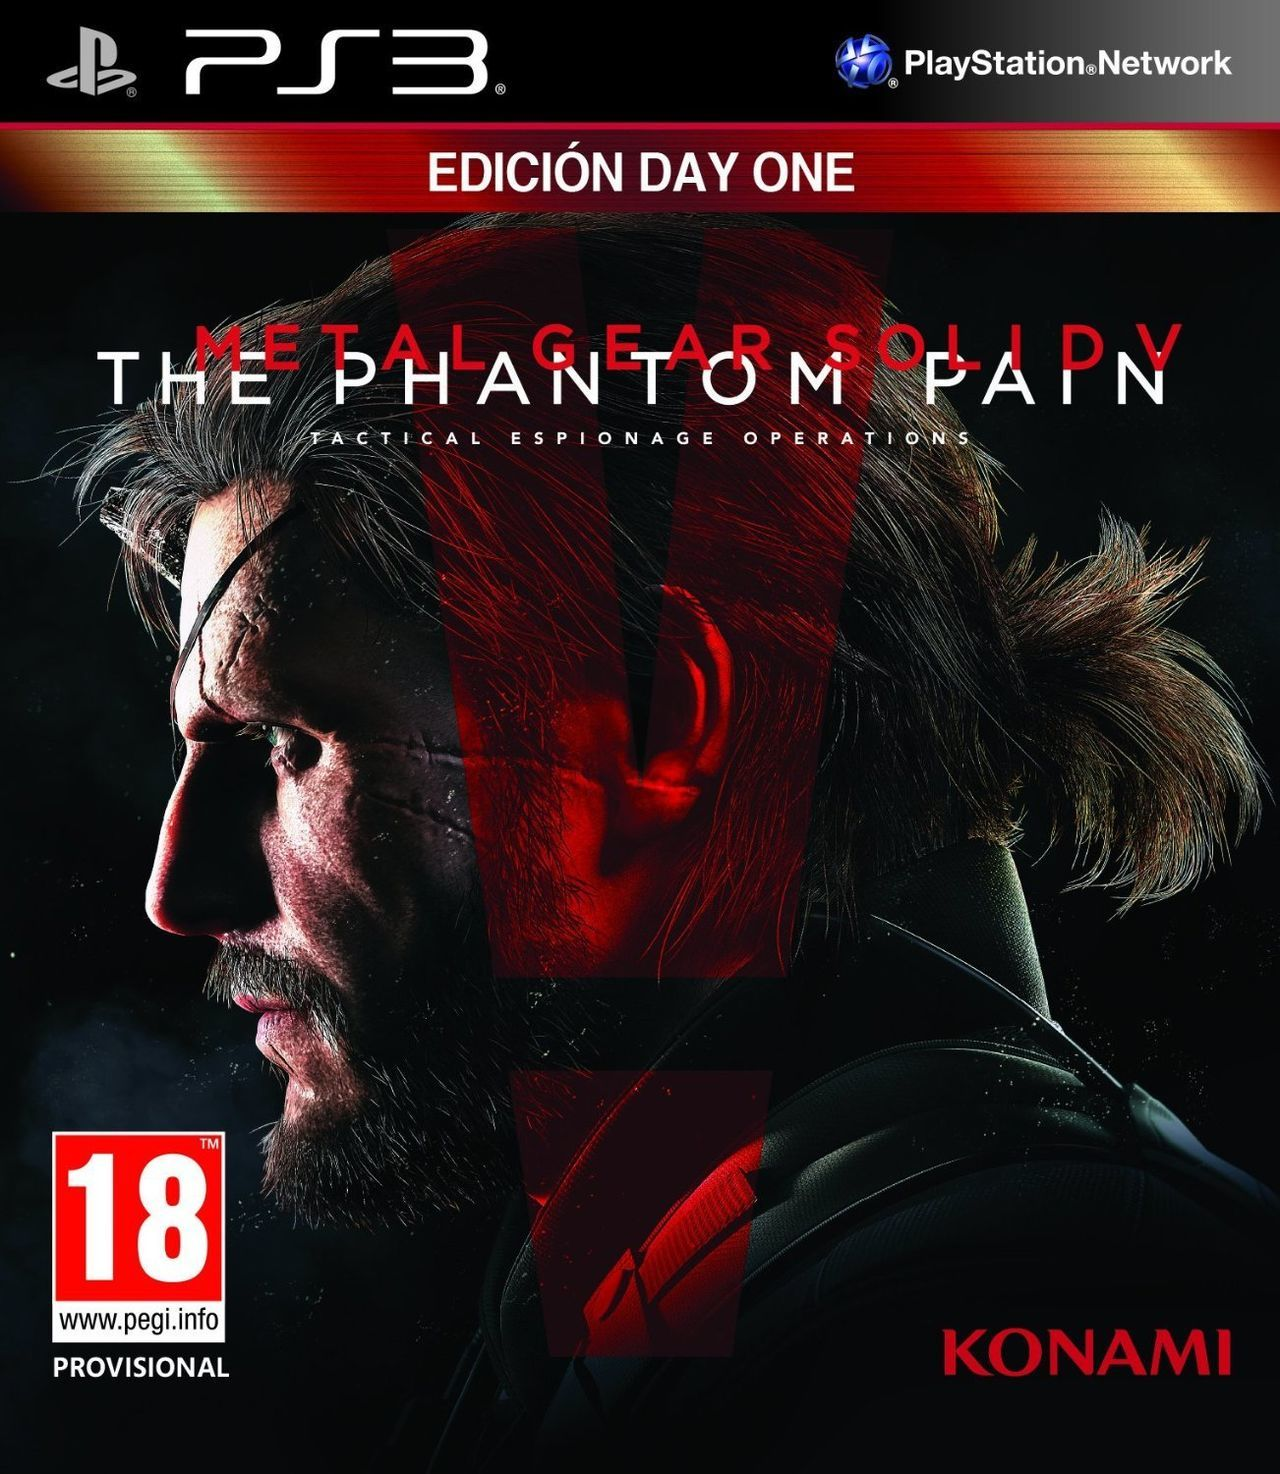 Imagen 317 de Metal Gear Solid V: The Phantom Pain para PlayStation 3